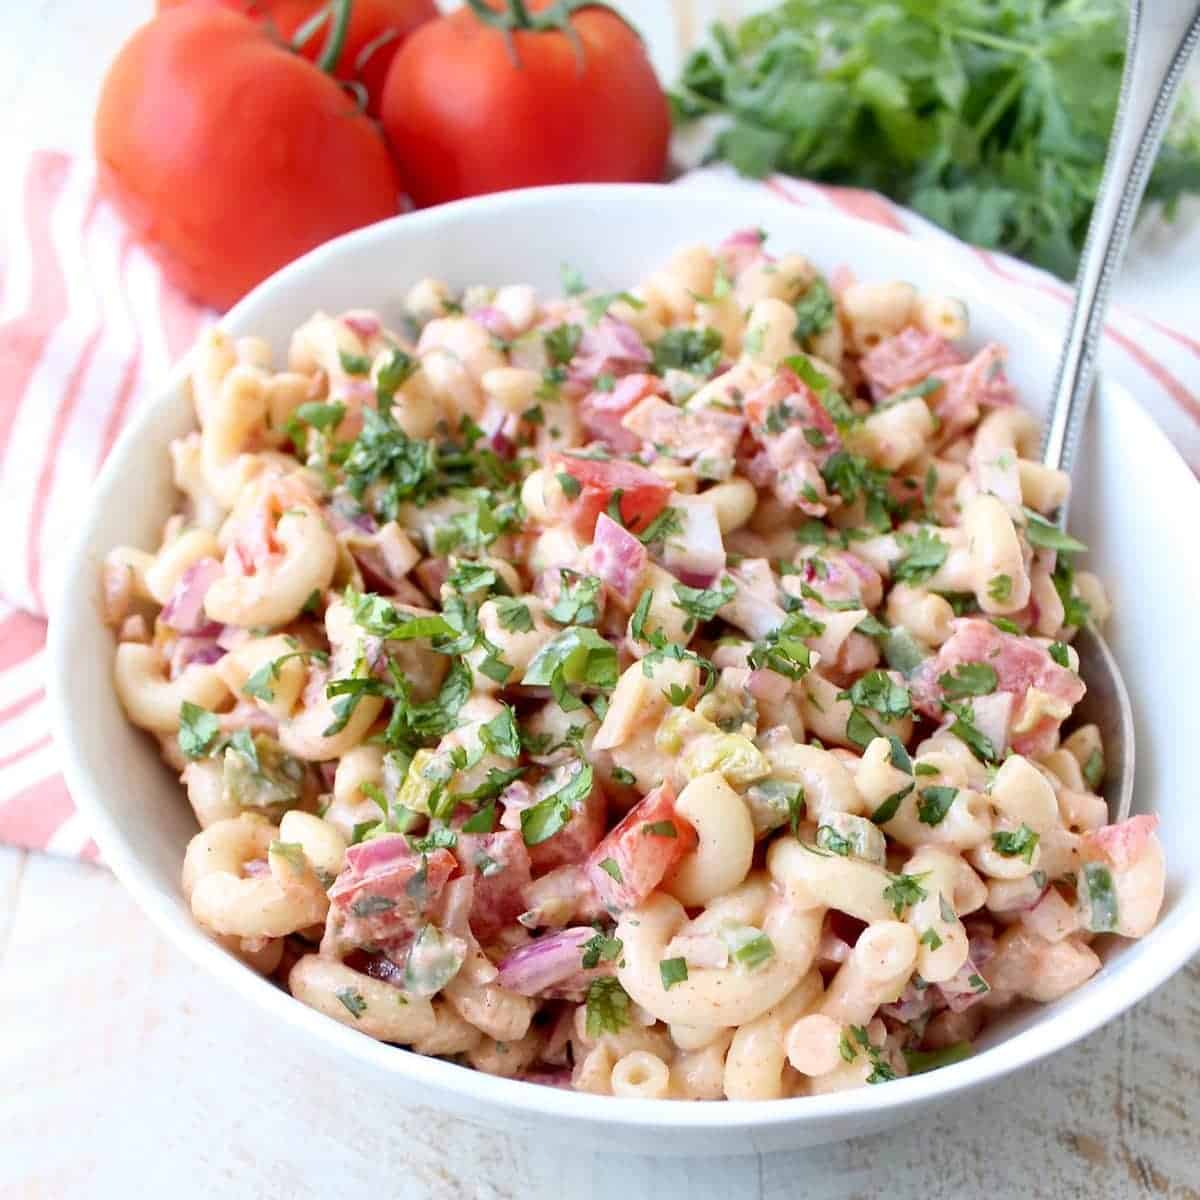 Spicy Buffalo Macaroni Salad